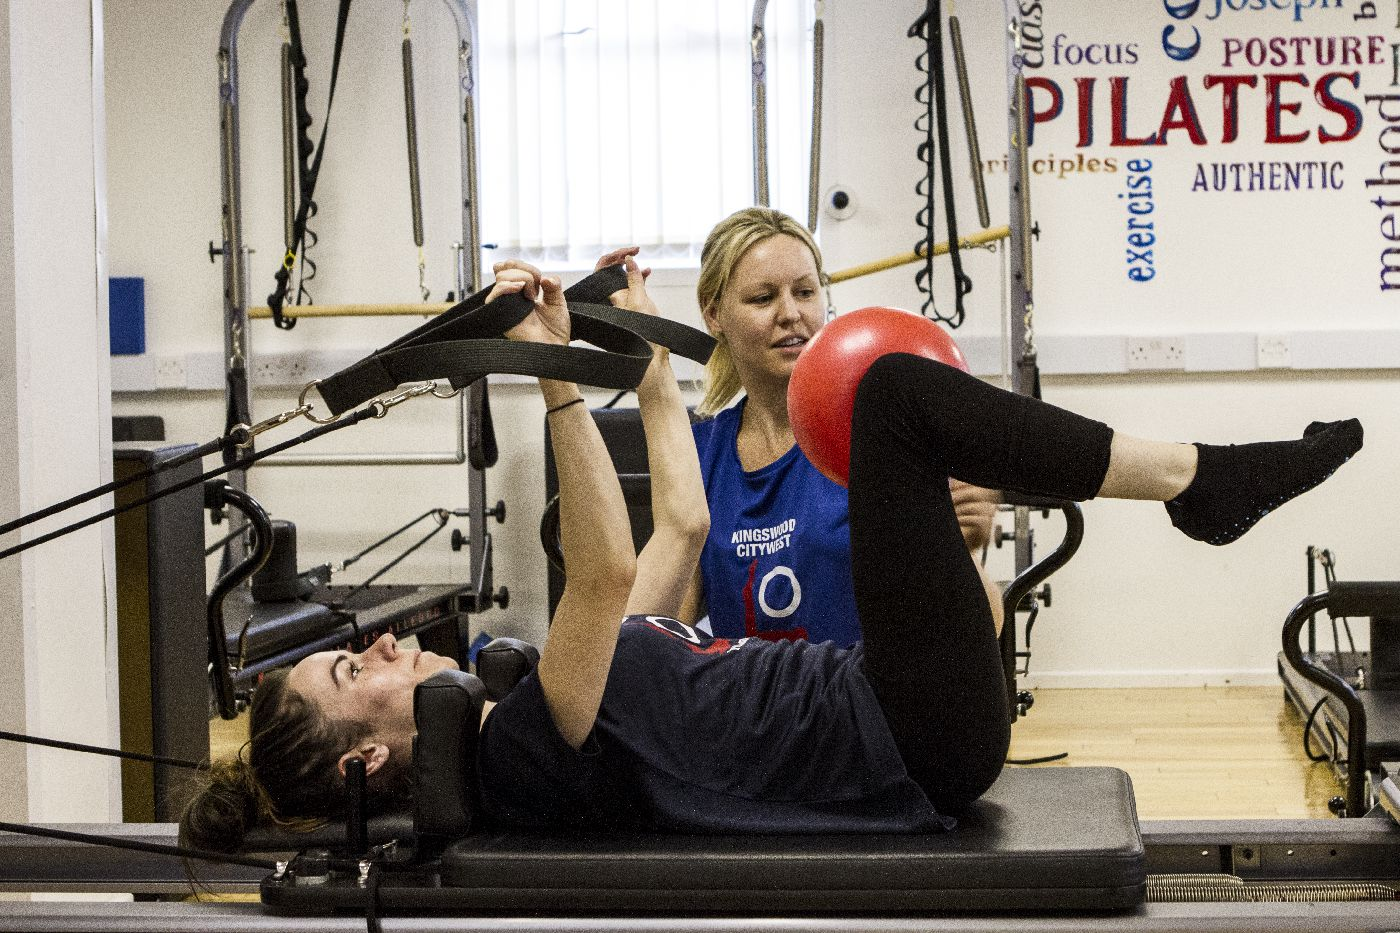 Louise O'Rourke Physiotherapy - Reformer Pilates Classes Citywest, Kingswood, Naas, Dublin